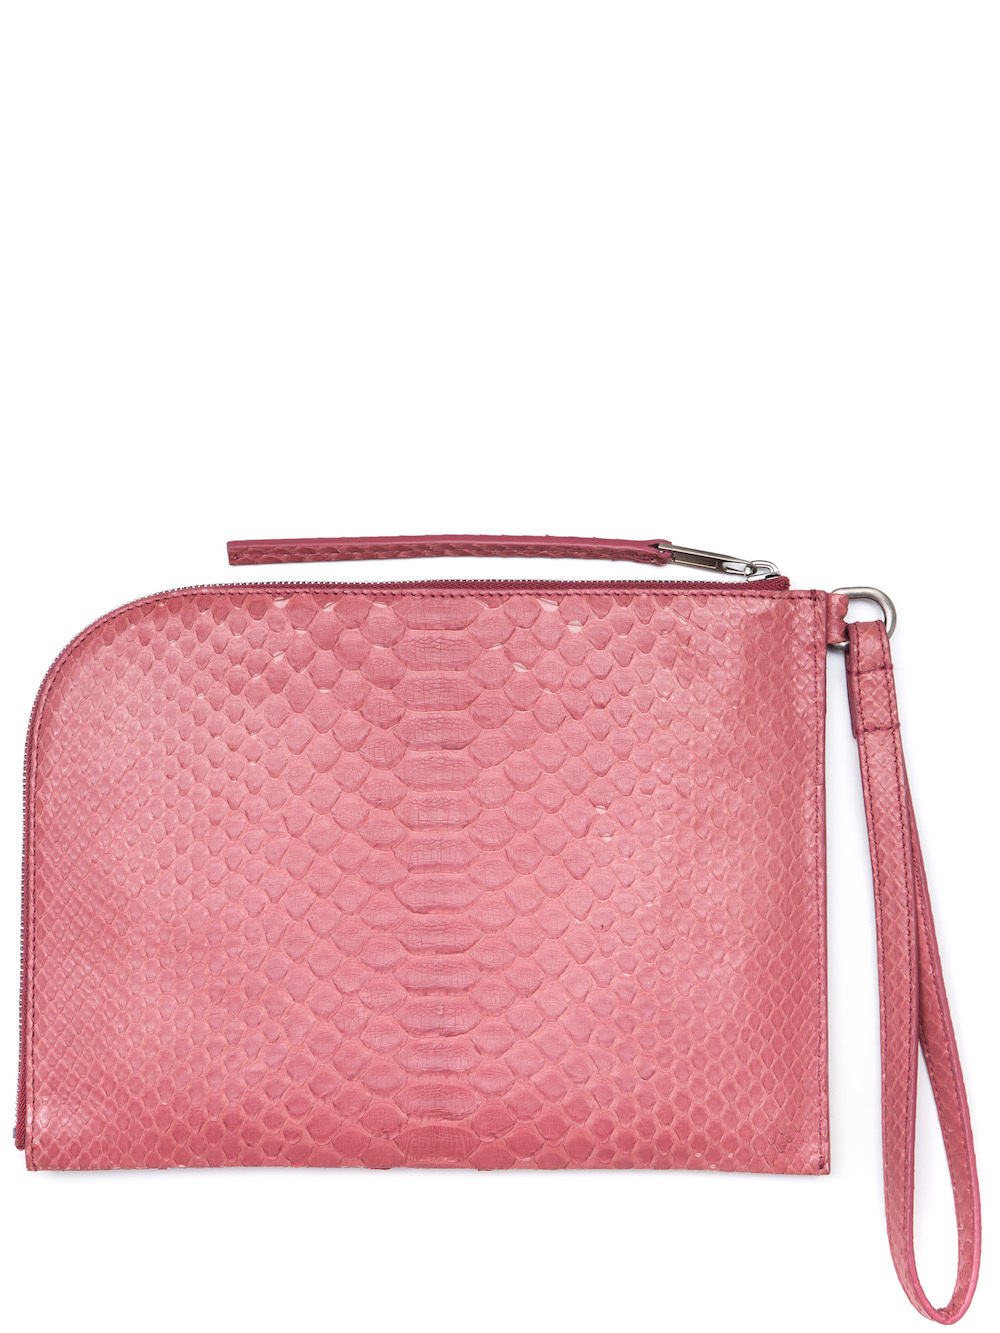 RICK OWENS MEDIUM ZIPPED POUCH IN PINK PYTHON LEATHER